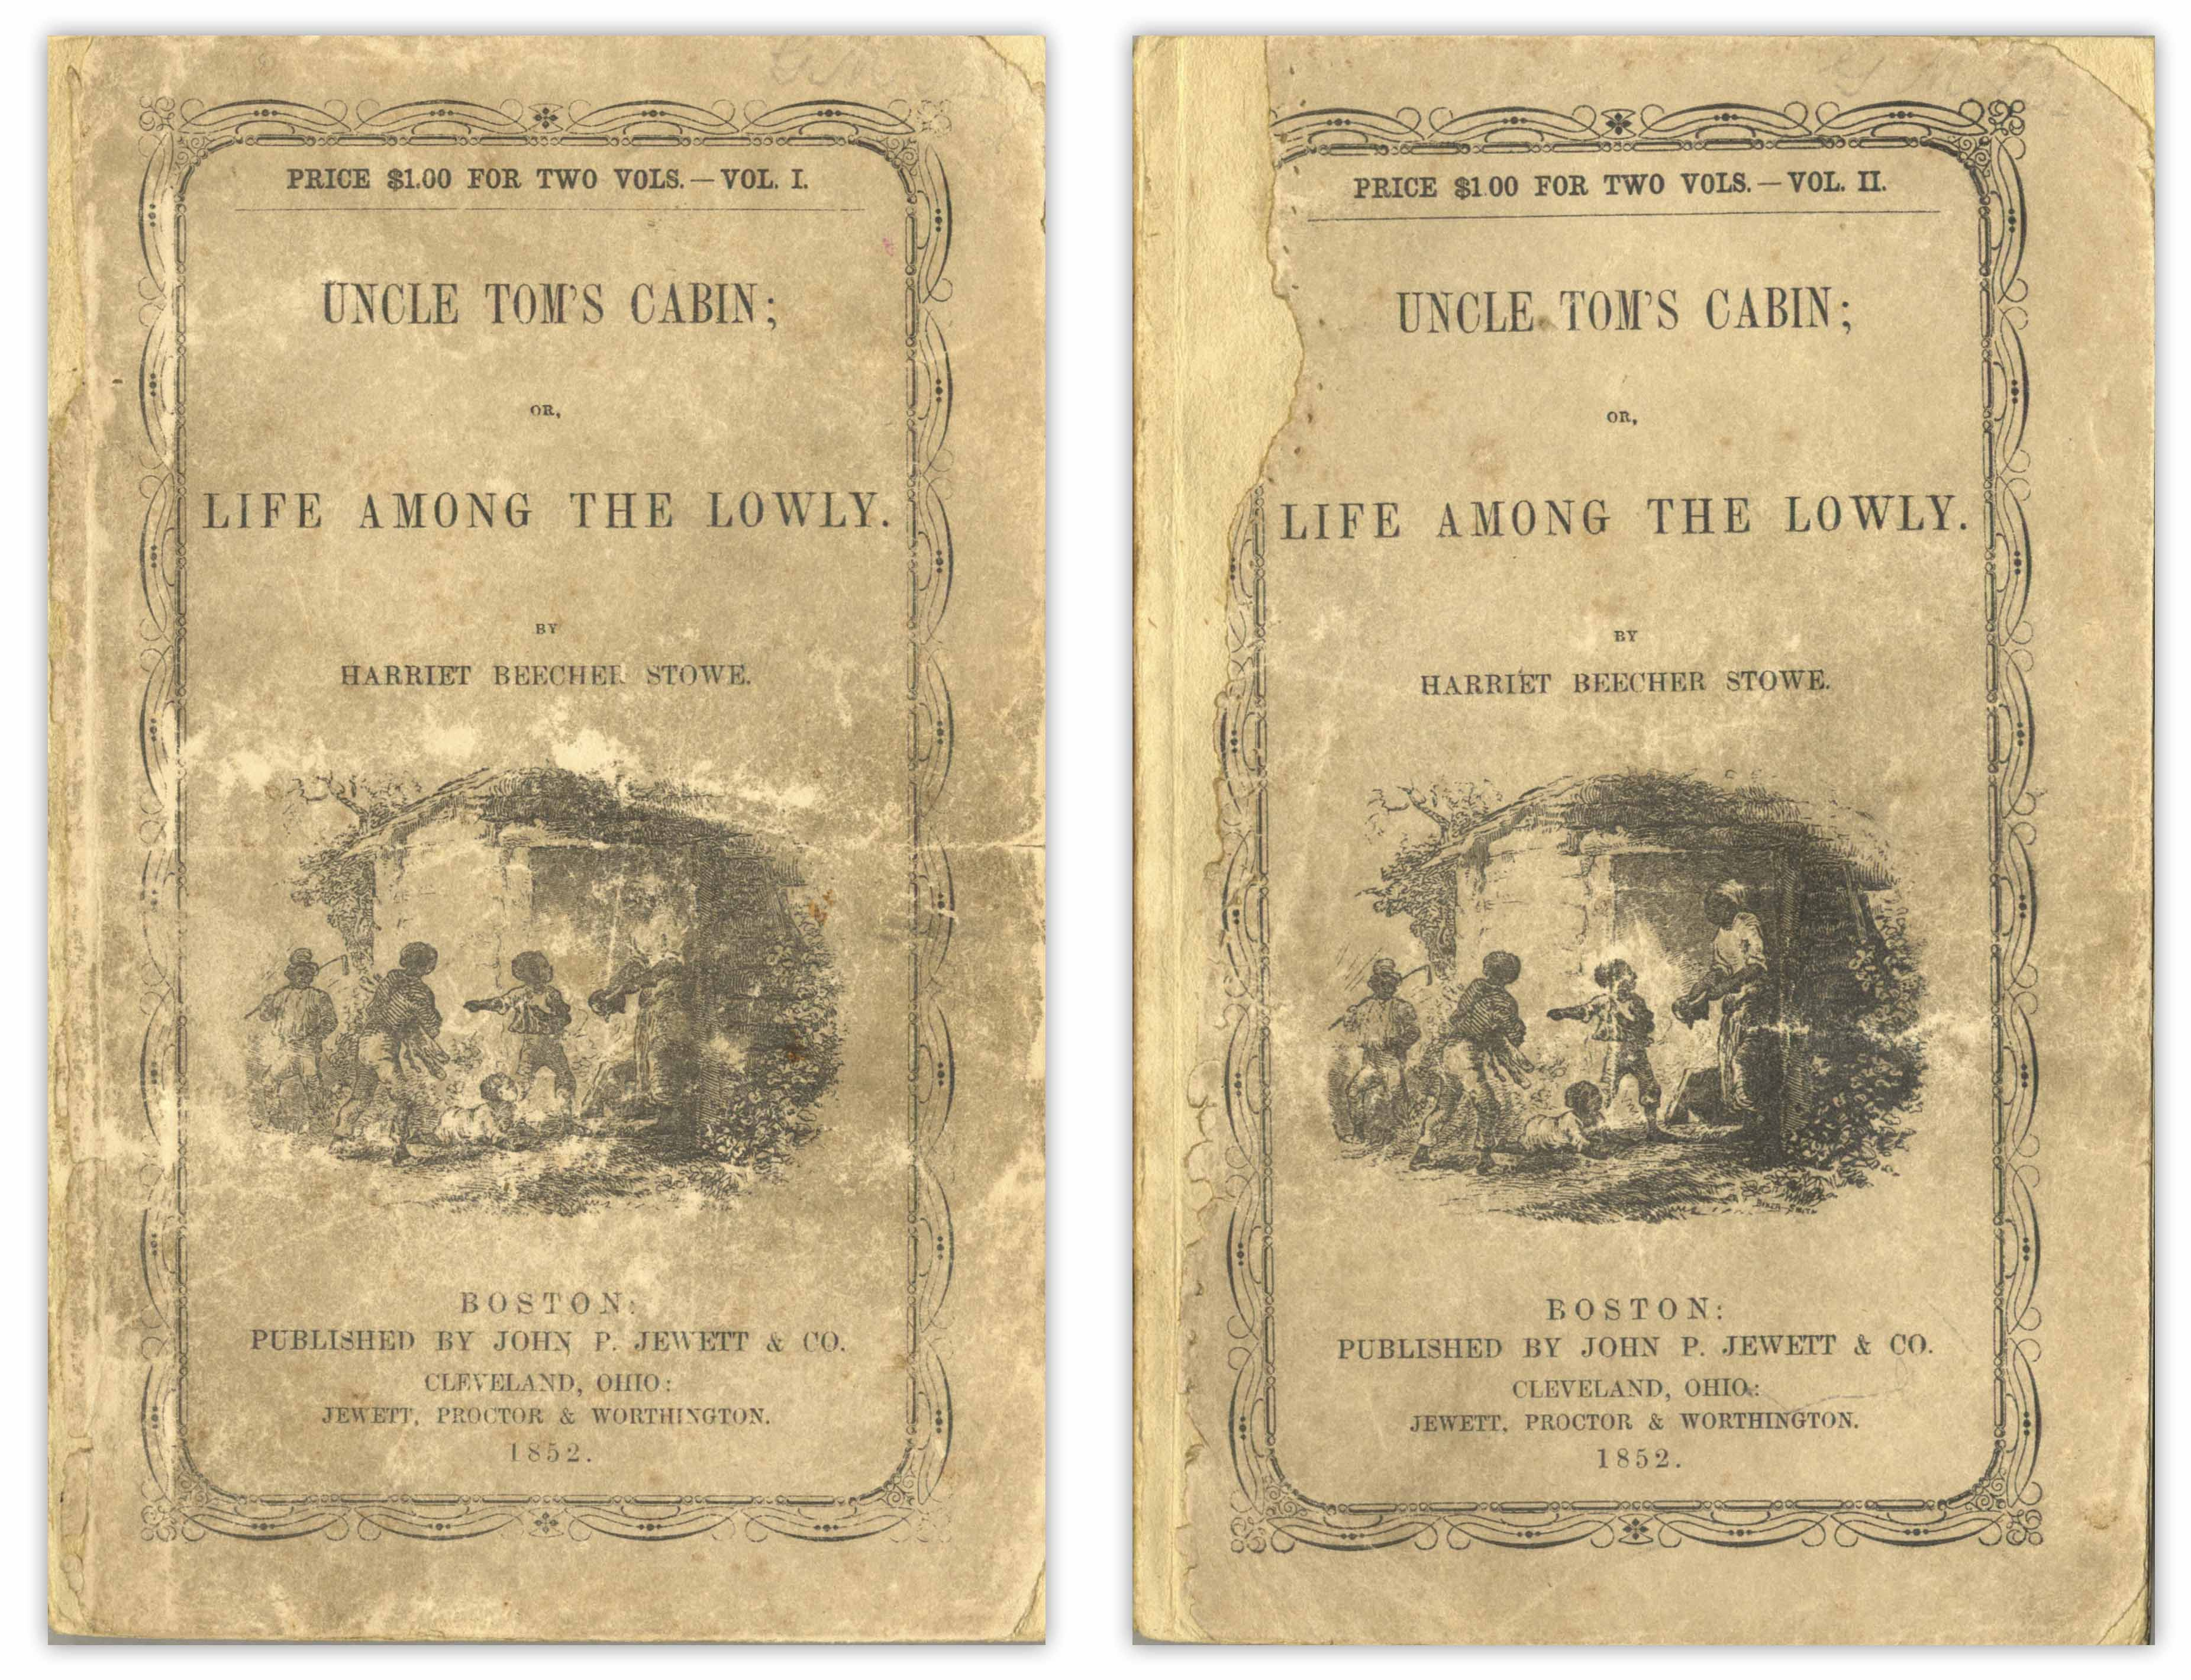 Sell Your Uncle Tom S Cabin First Edition At Nate D Sanders